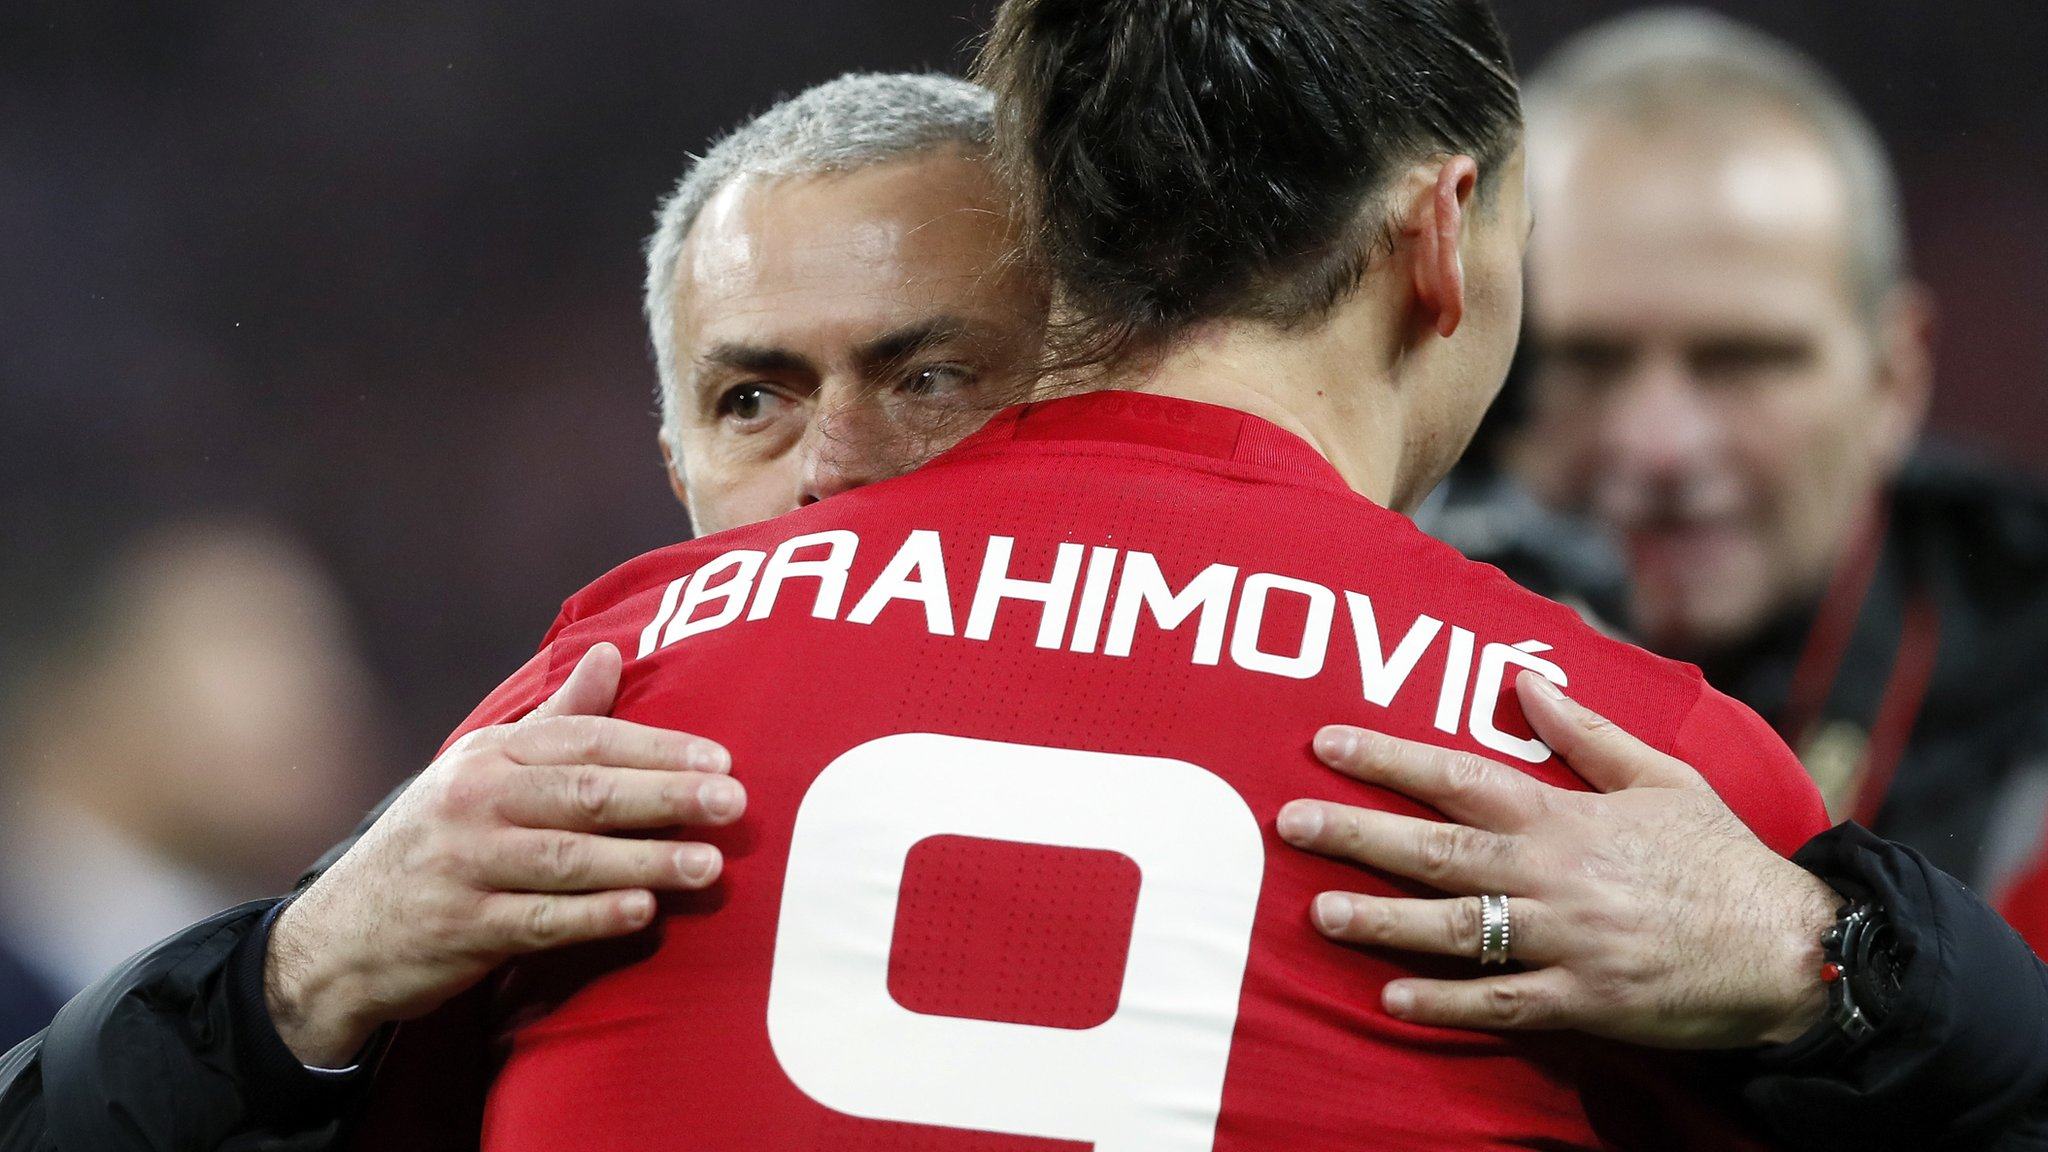 Mourinho believes Ibrahimovic will stay - but will not 'beg'